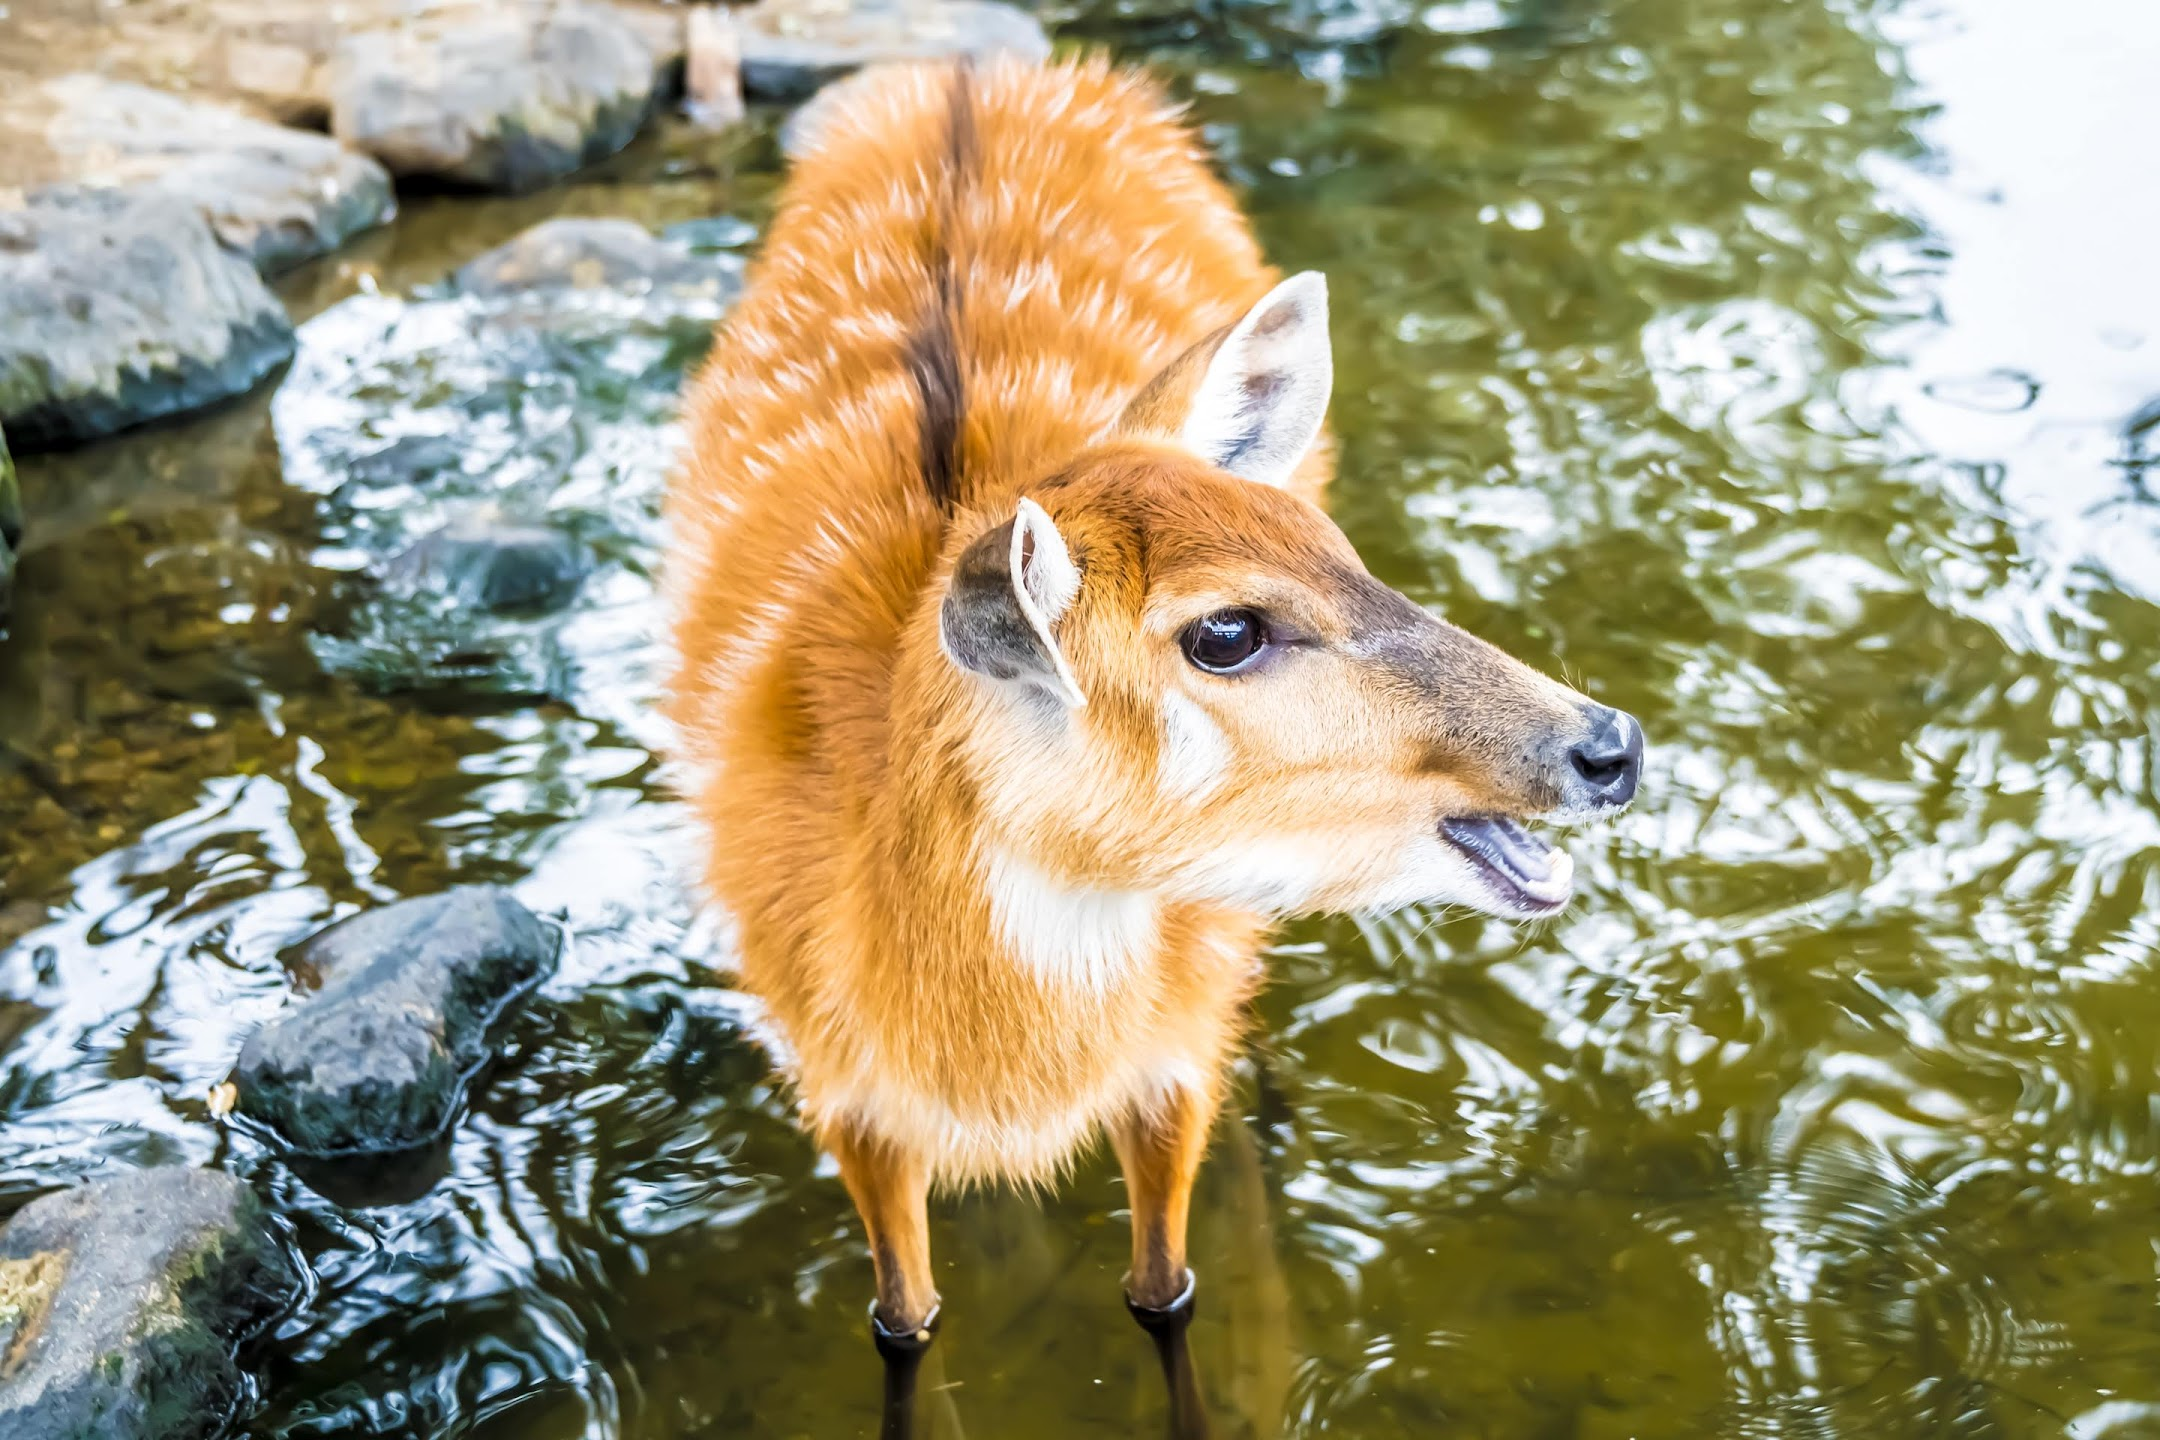 Kobe Animal Kingdom sitatunga